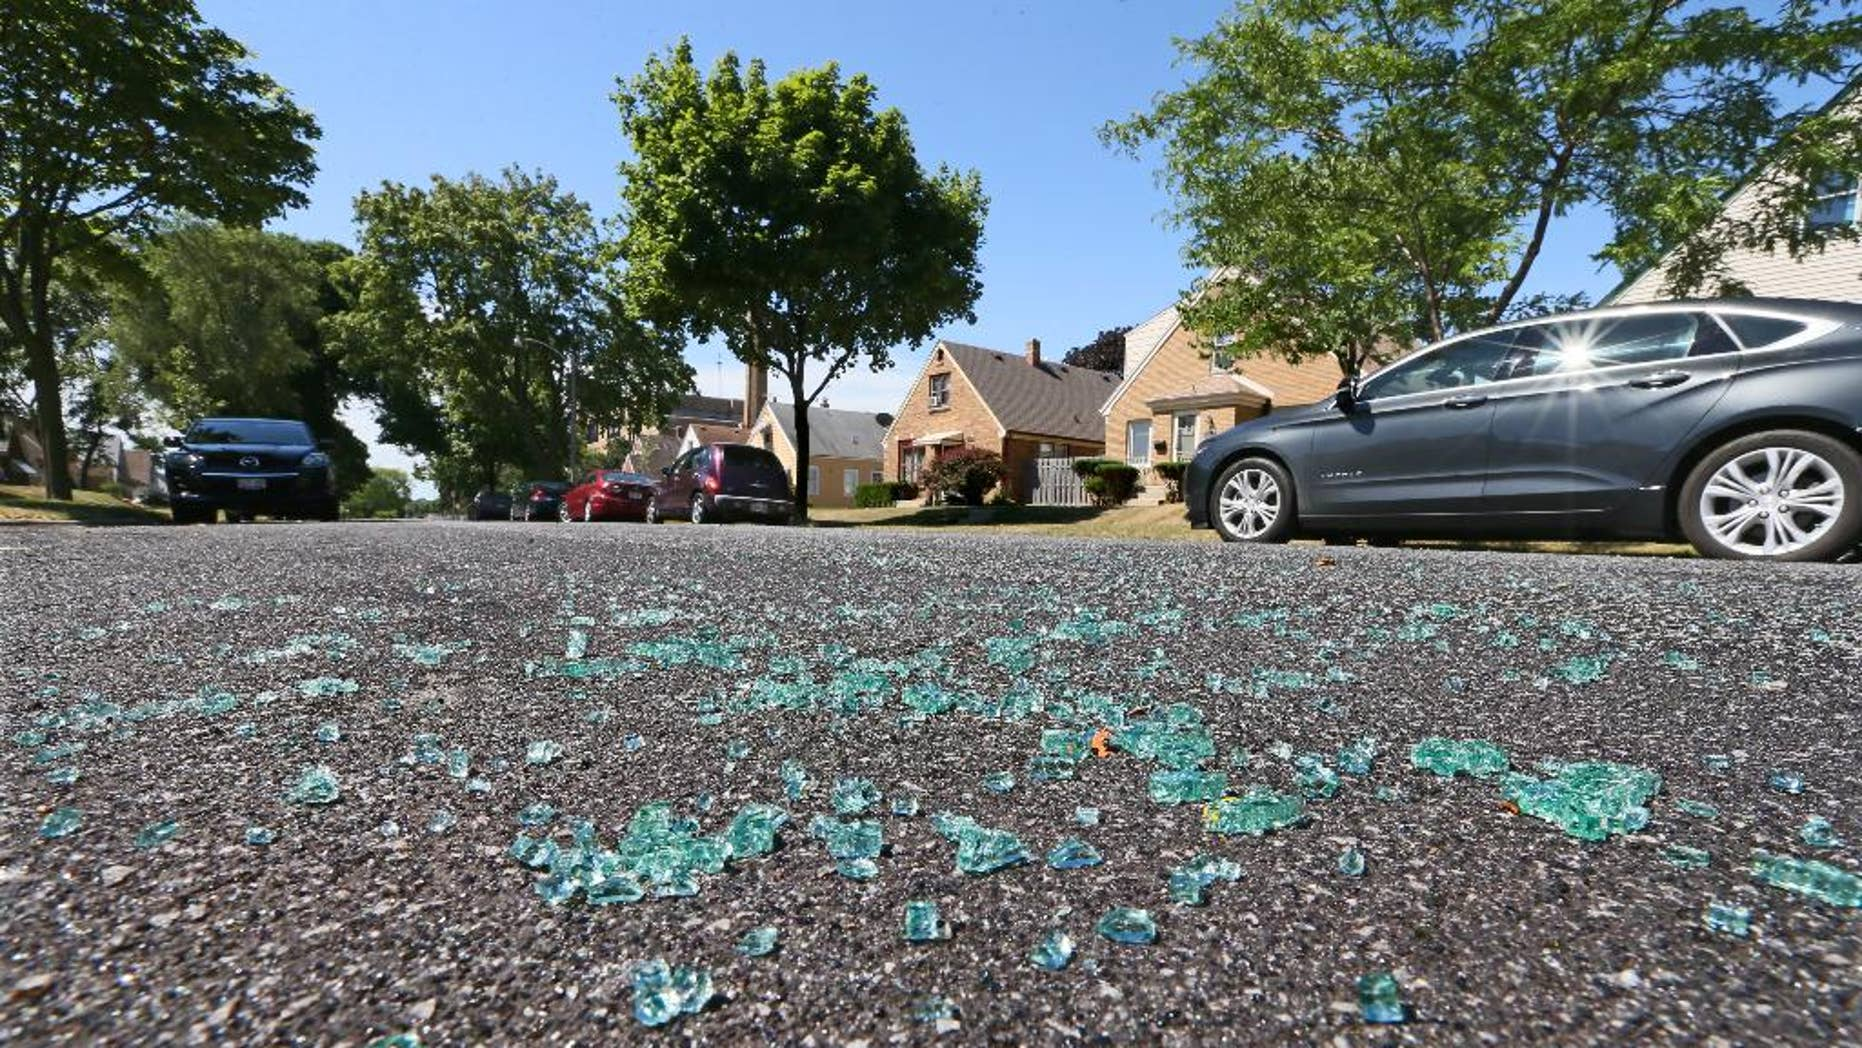 Broken auto glass is scattered in the street in the 3500 Blk. of S. 17th St. in Milwaukee, where a Milwaukee Police officer was shot while seated in the front seat of his squad car early Sunday, July 17, 2016.  A domestic violence suspect opened fire on the officer, who was sitting in his squad car early Sunday, seriously wounding him before fleeing and apparently killing himself shortly afterward, authorities said.  (Michael Sears/Milwaukee Journal Sentinel via AP)